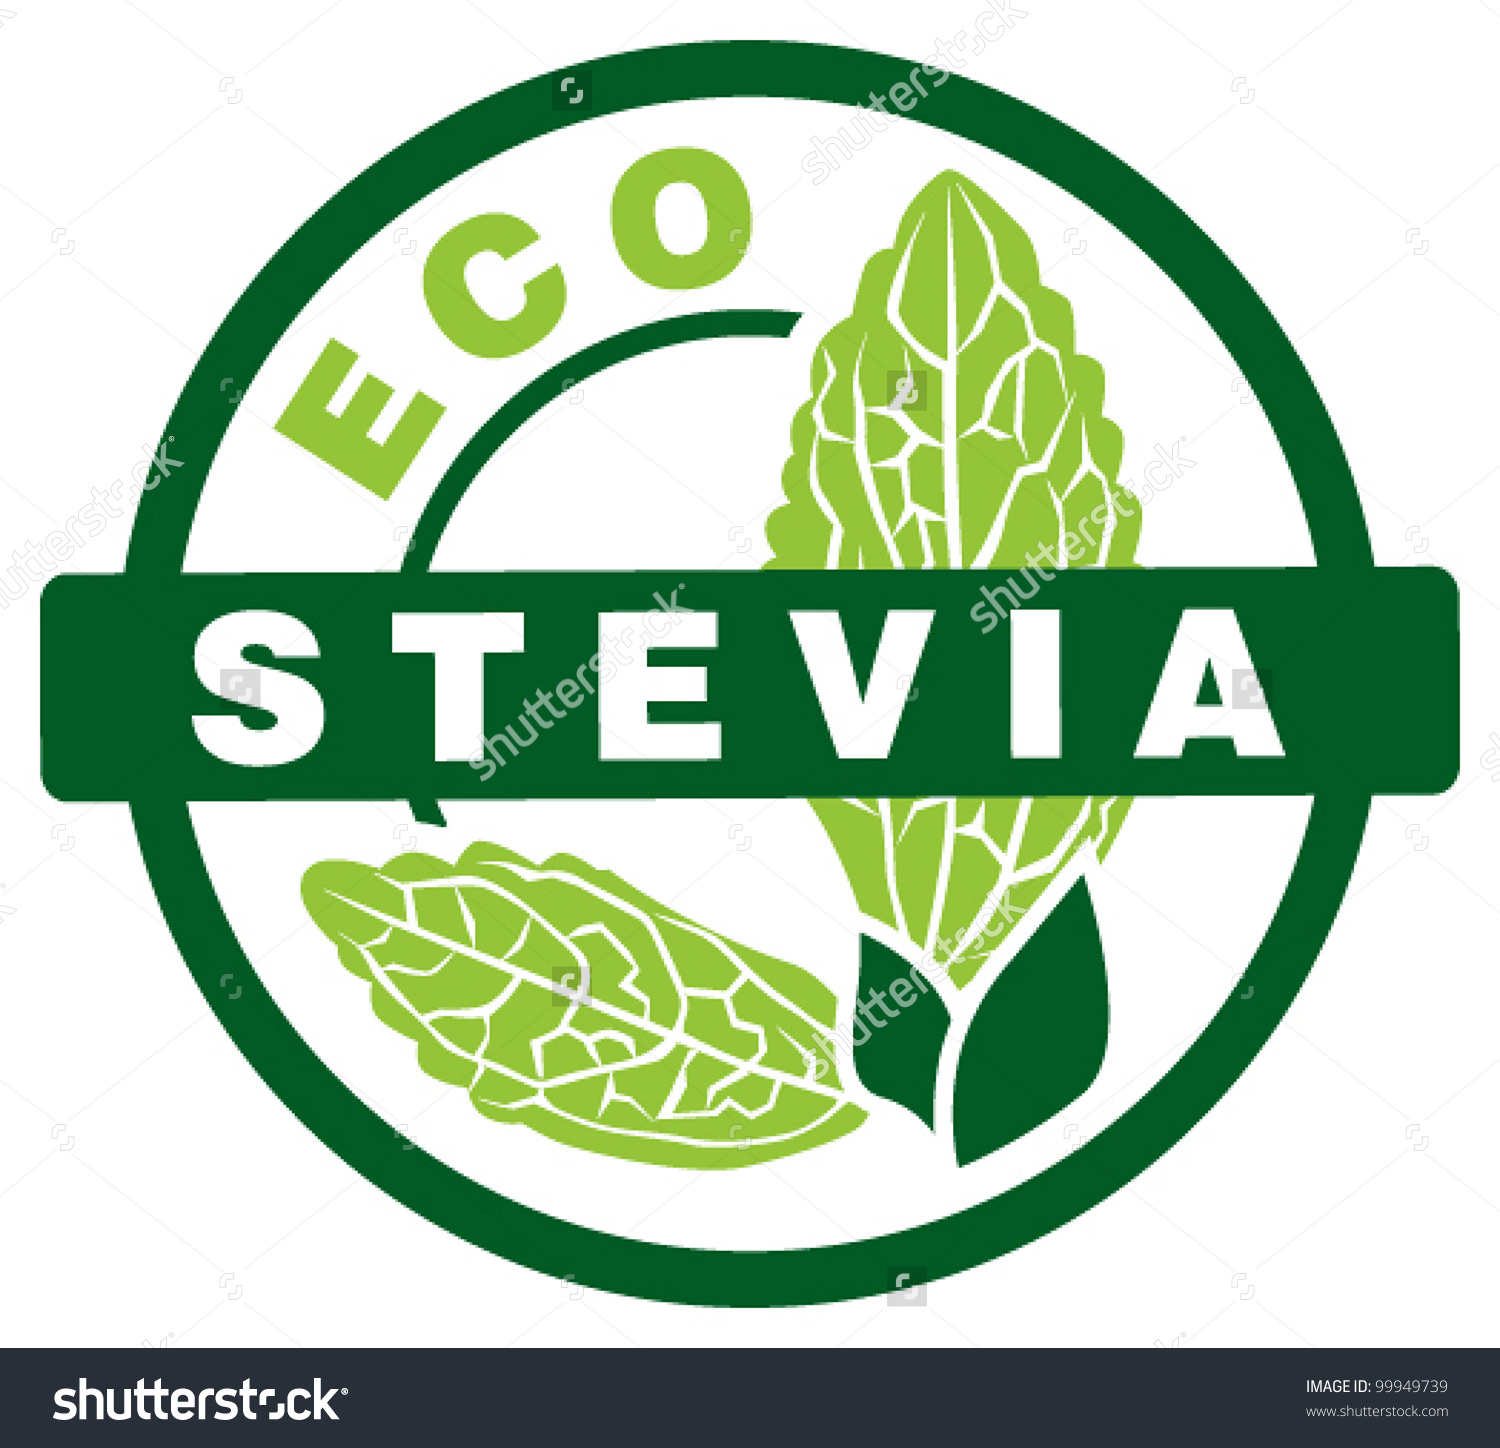 Stevia Sweet Leaf Stamp Stock Vector 99949739.